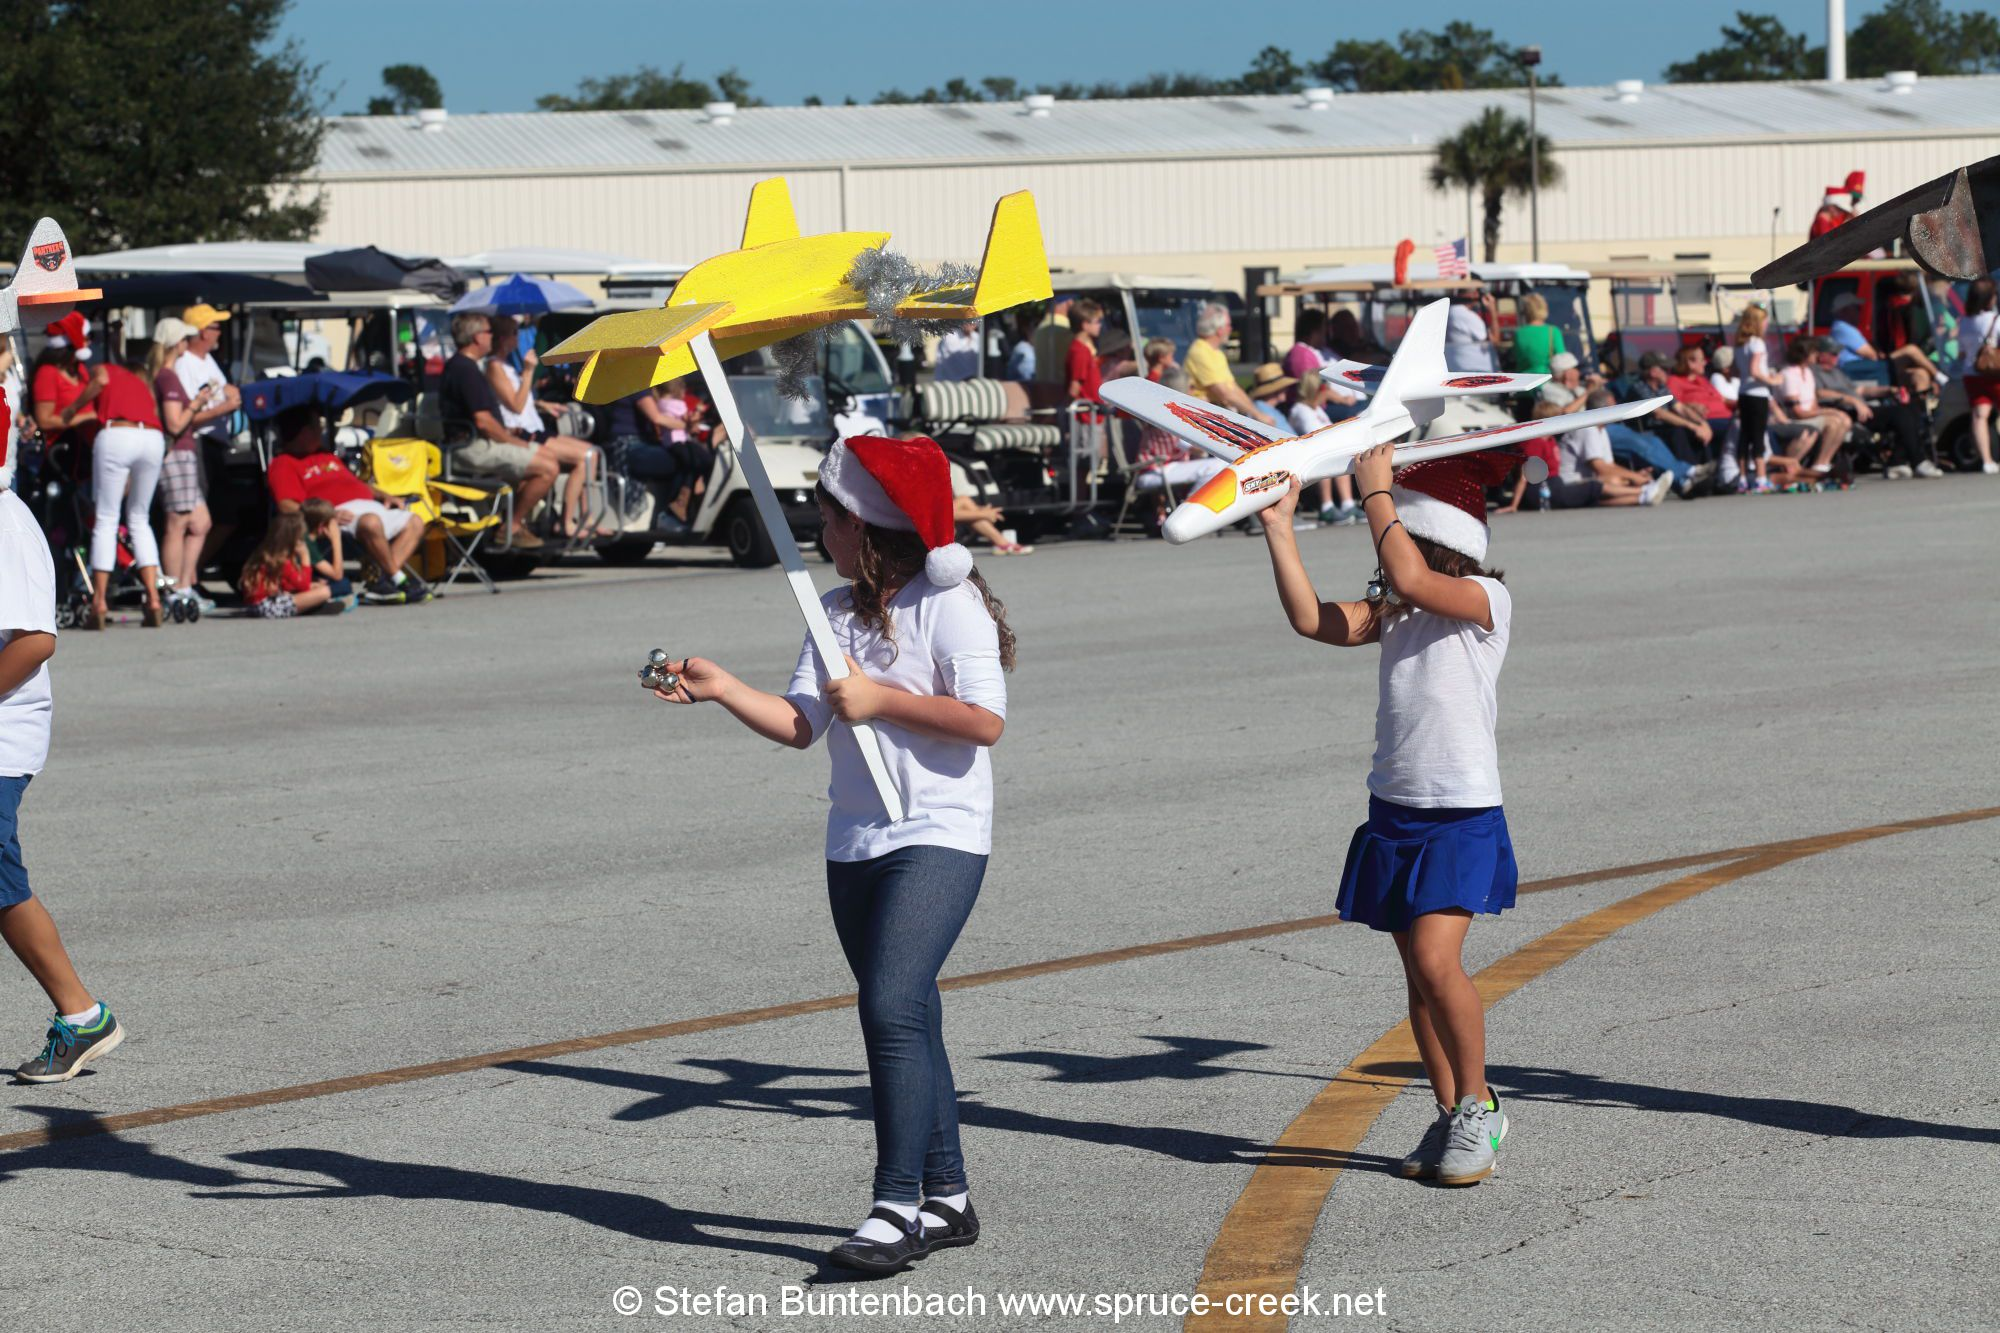 Spruce-Creek-Toyparade-2015- IMG_1568